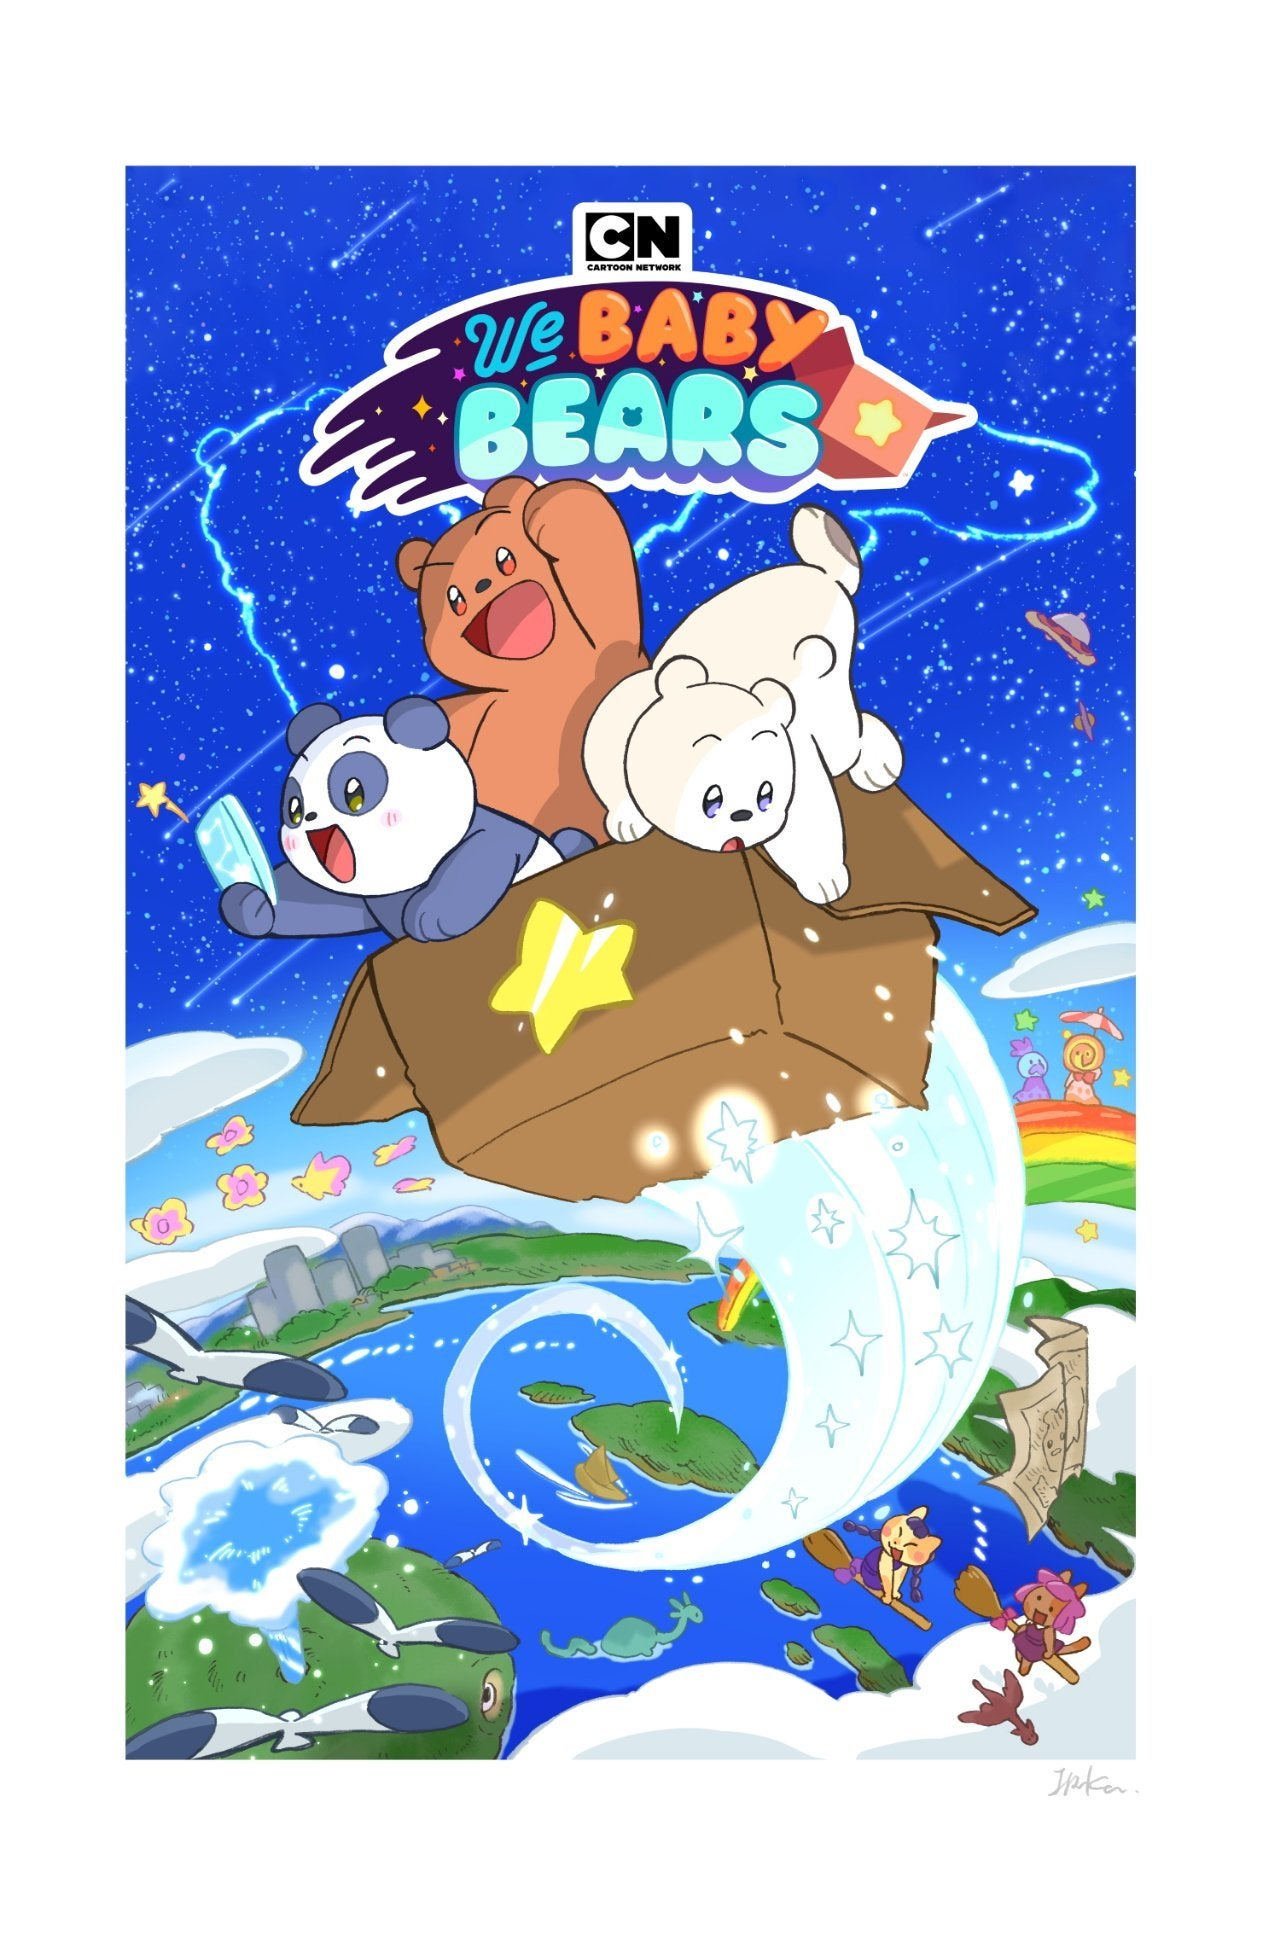 we baby bears key art